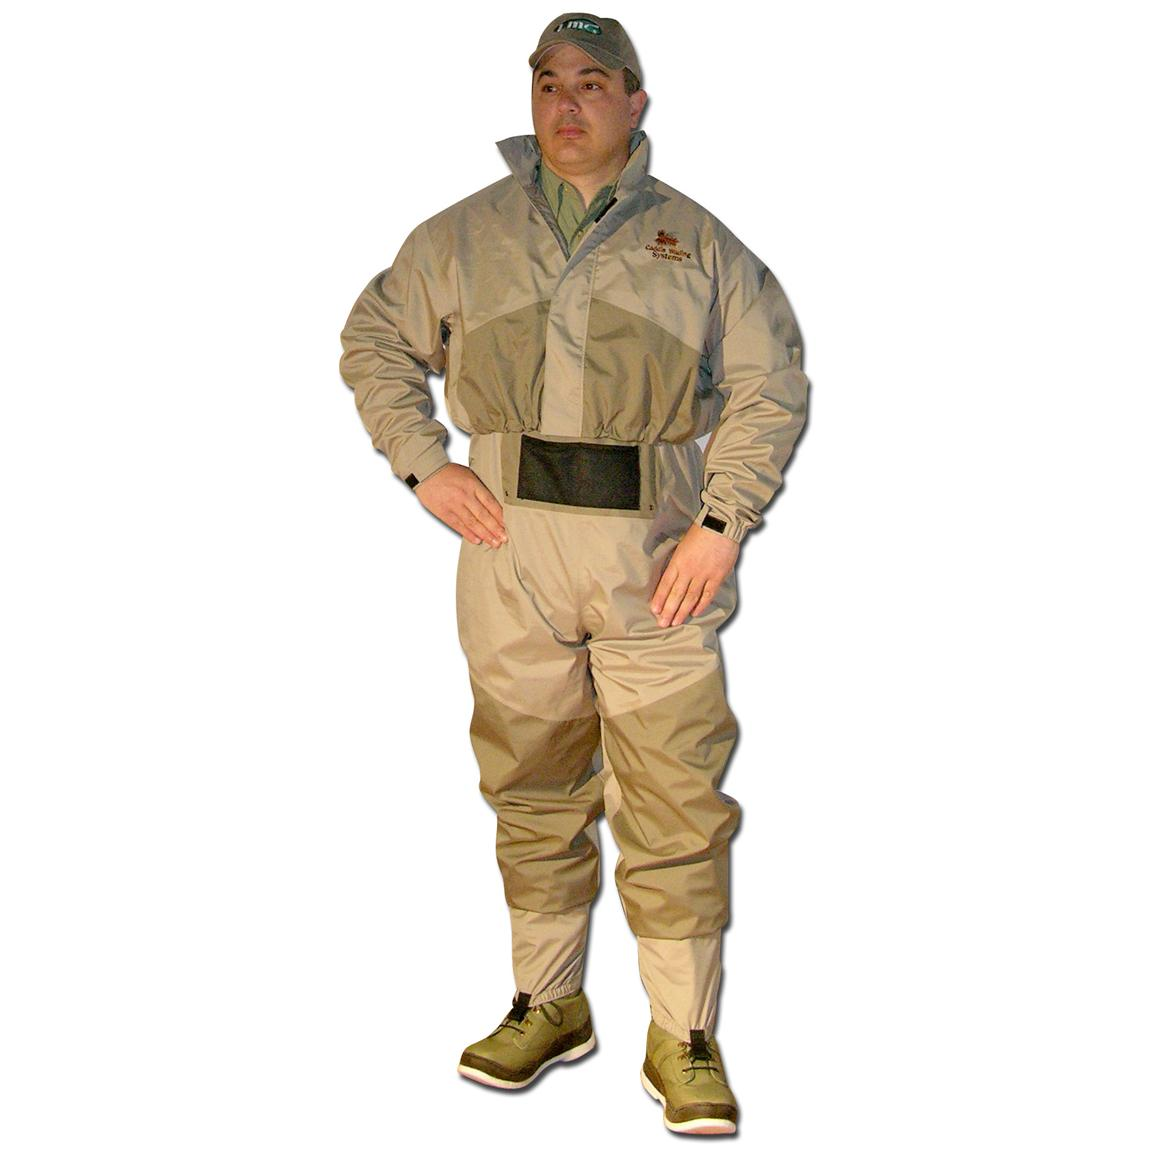 Caddis® Deluxe Waders with Jacket